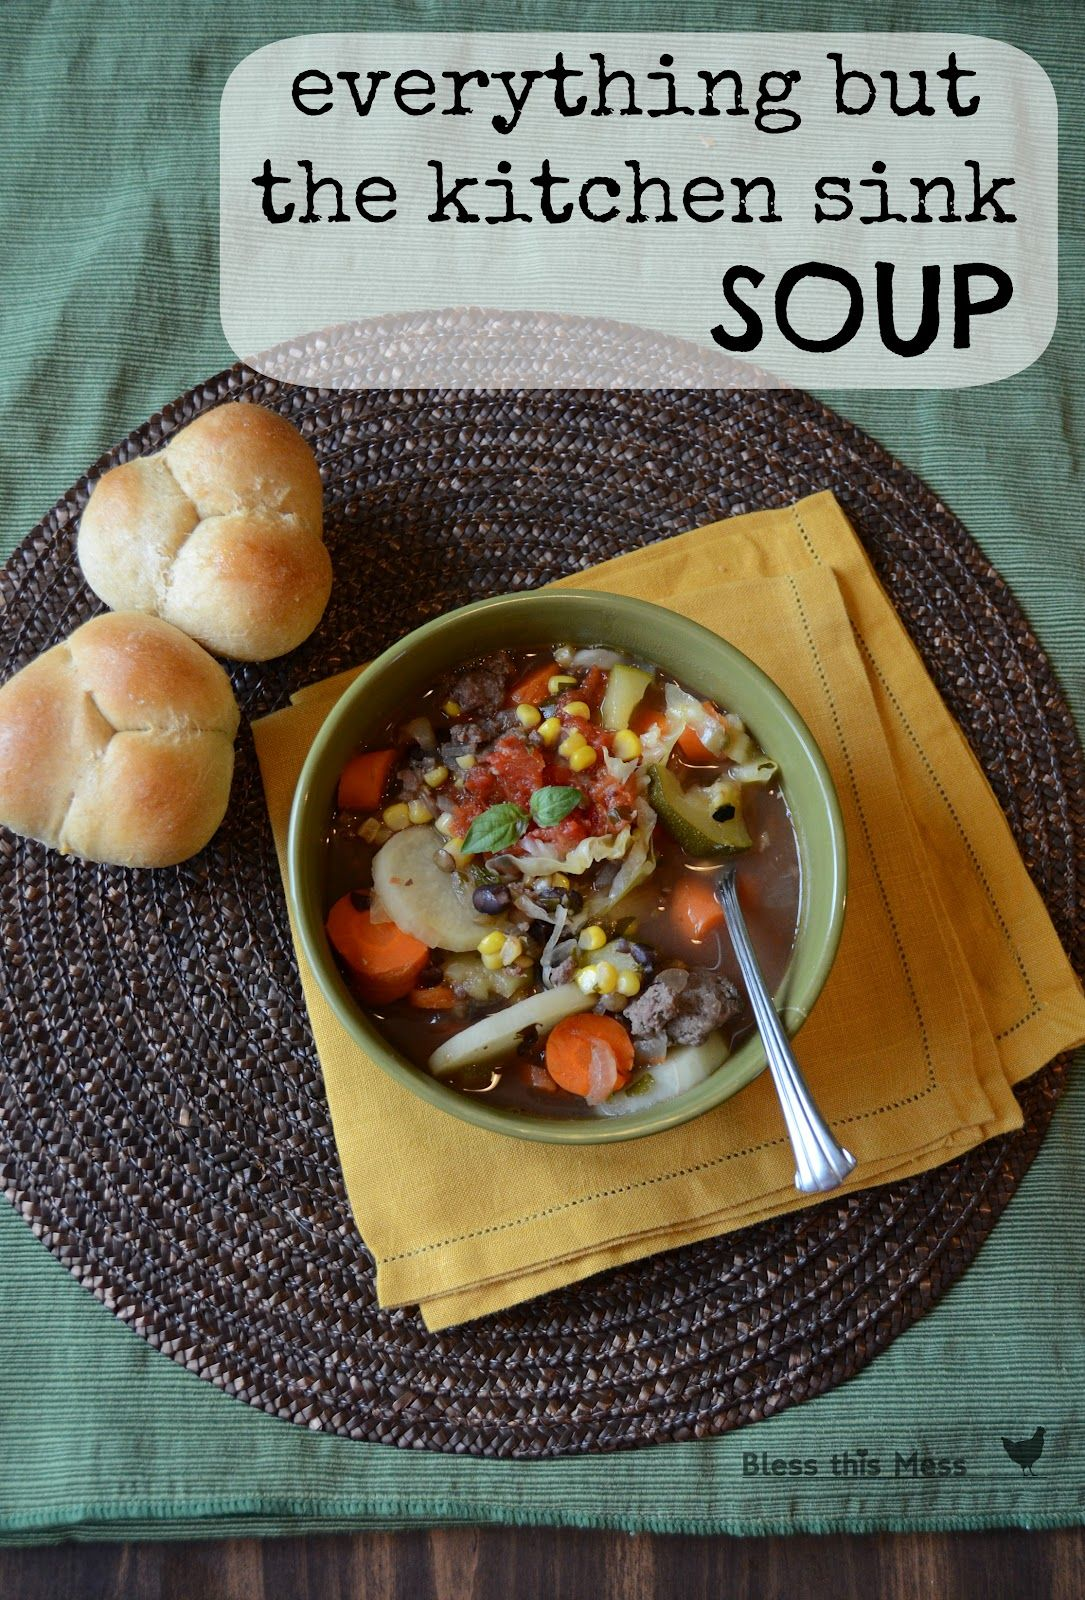 Everything But The Kitchen Sink Soup | 300 calories, Sinks ...